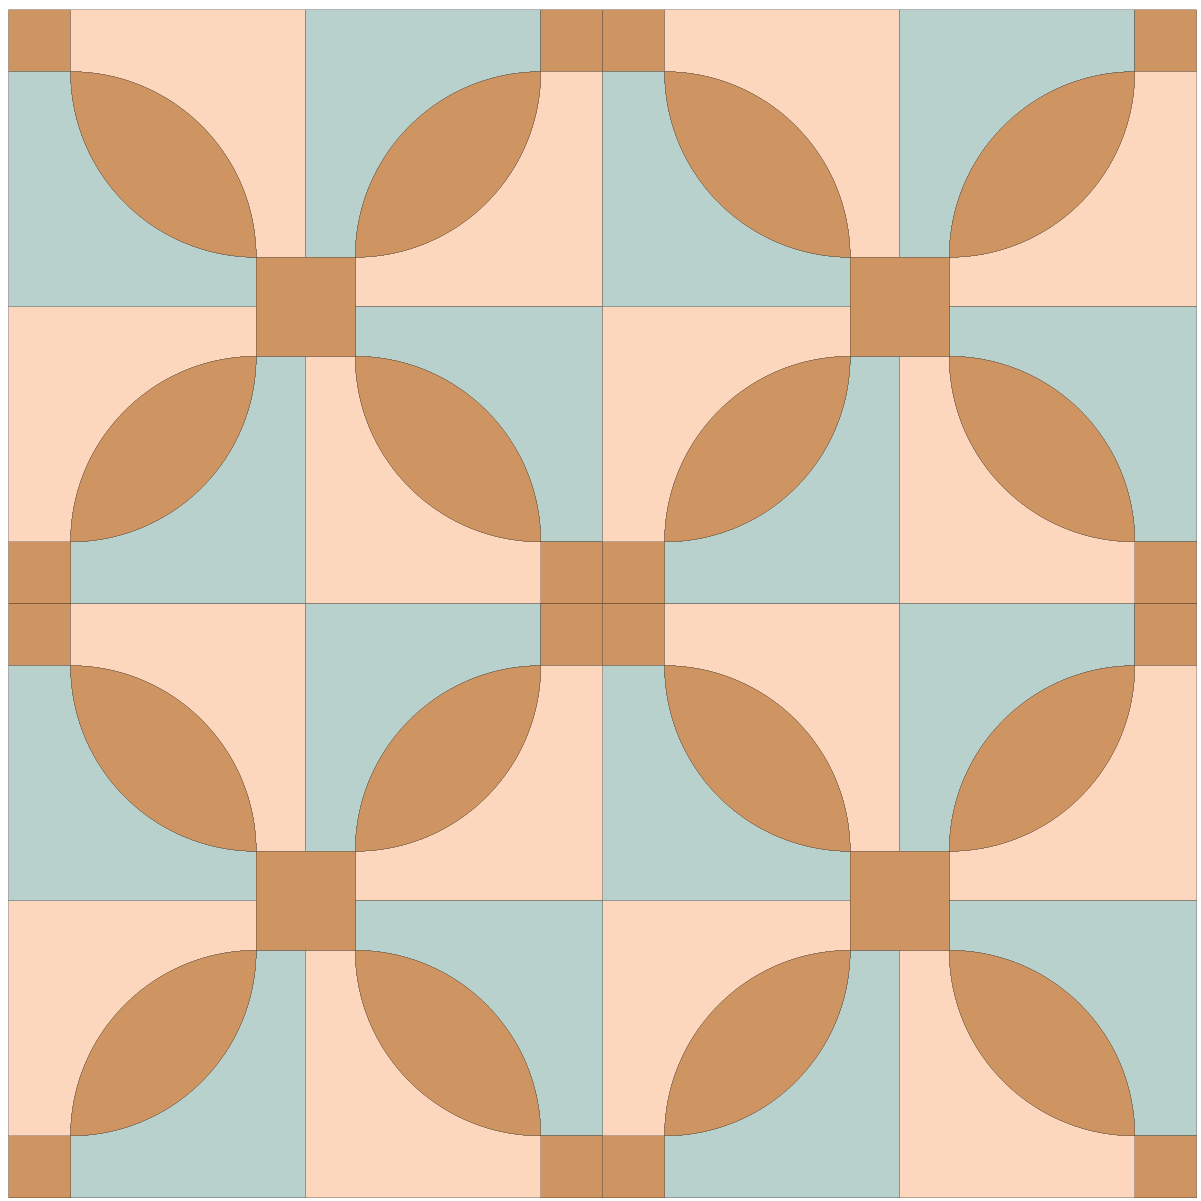 Illustration of a quilt made with Idaho Quilt Blocks